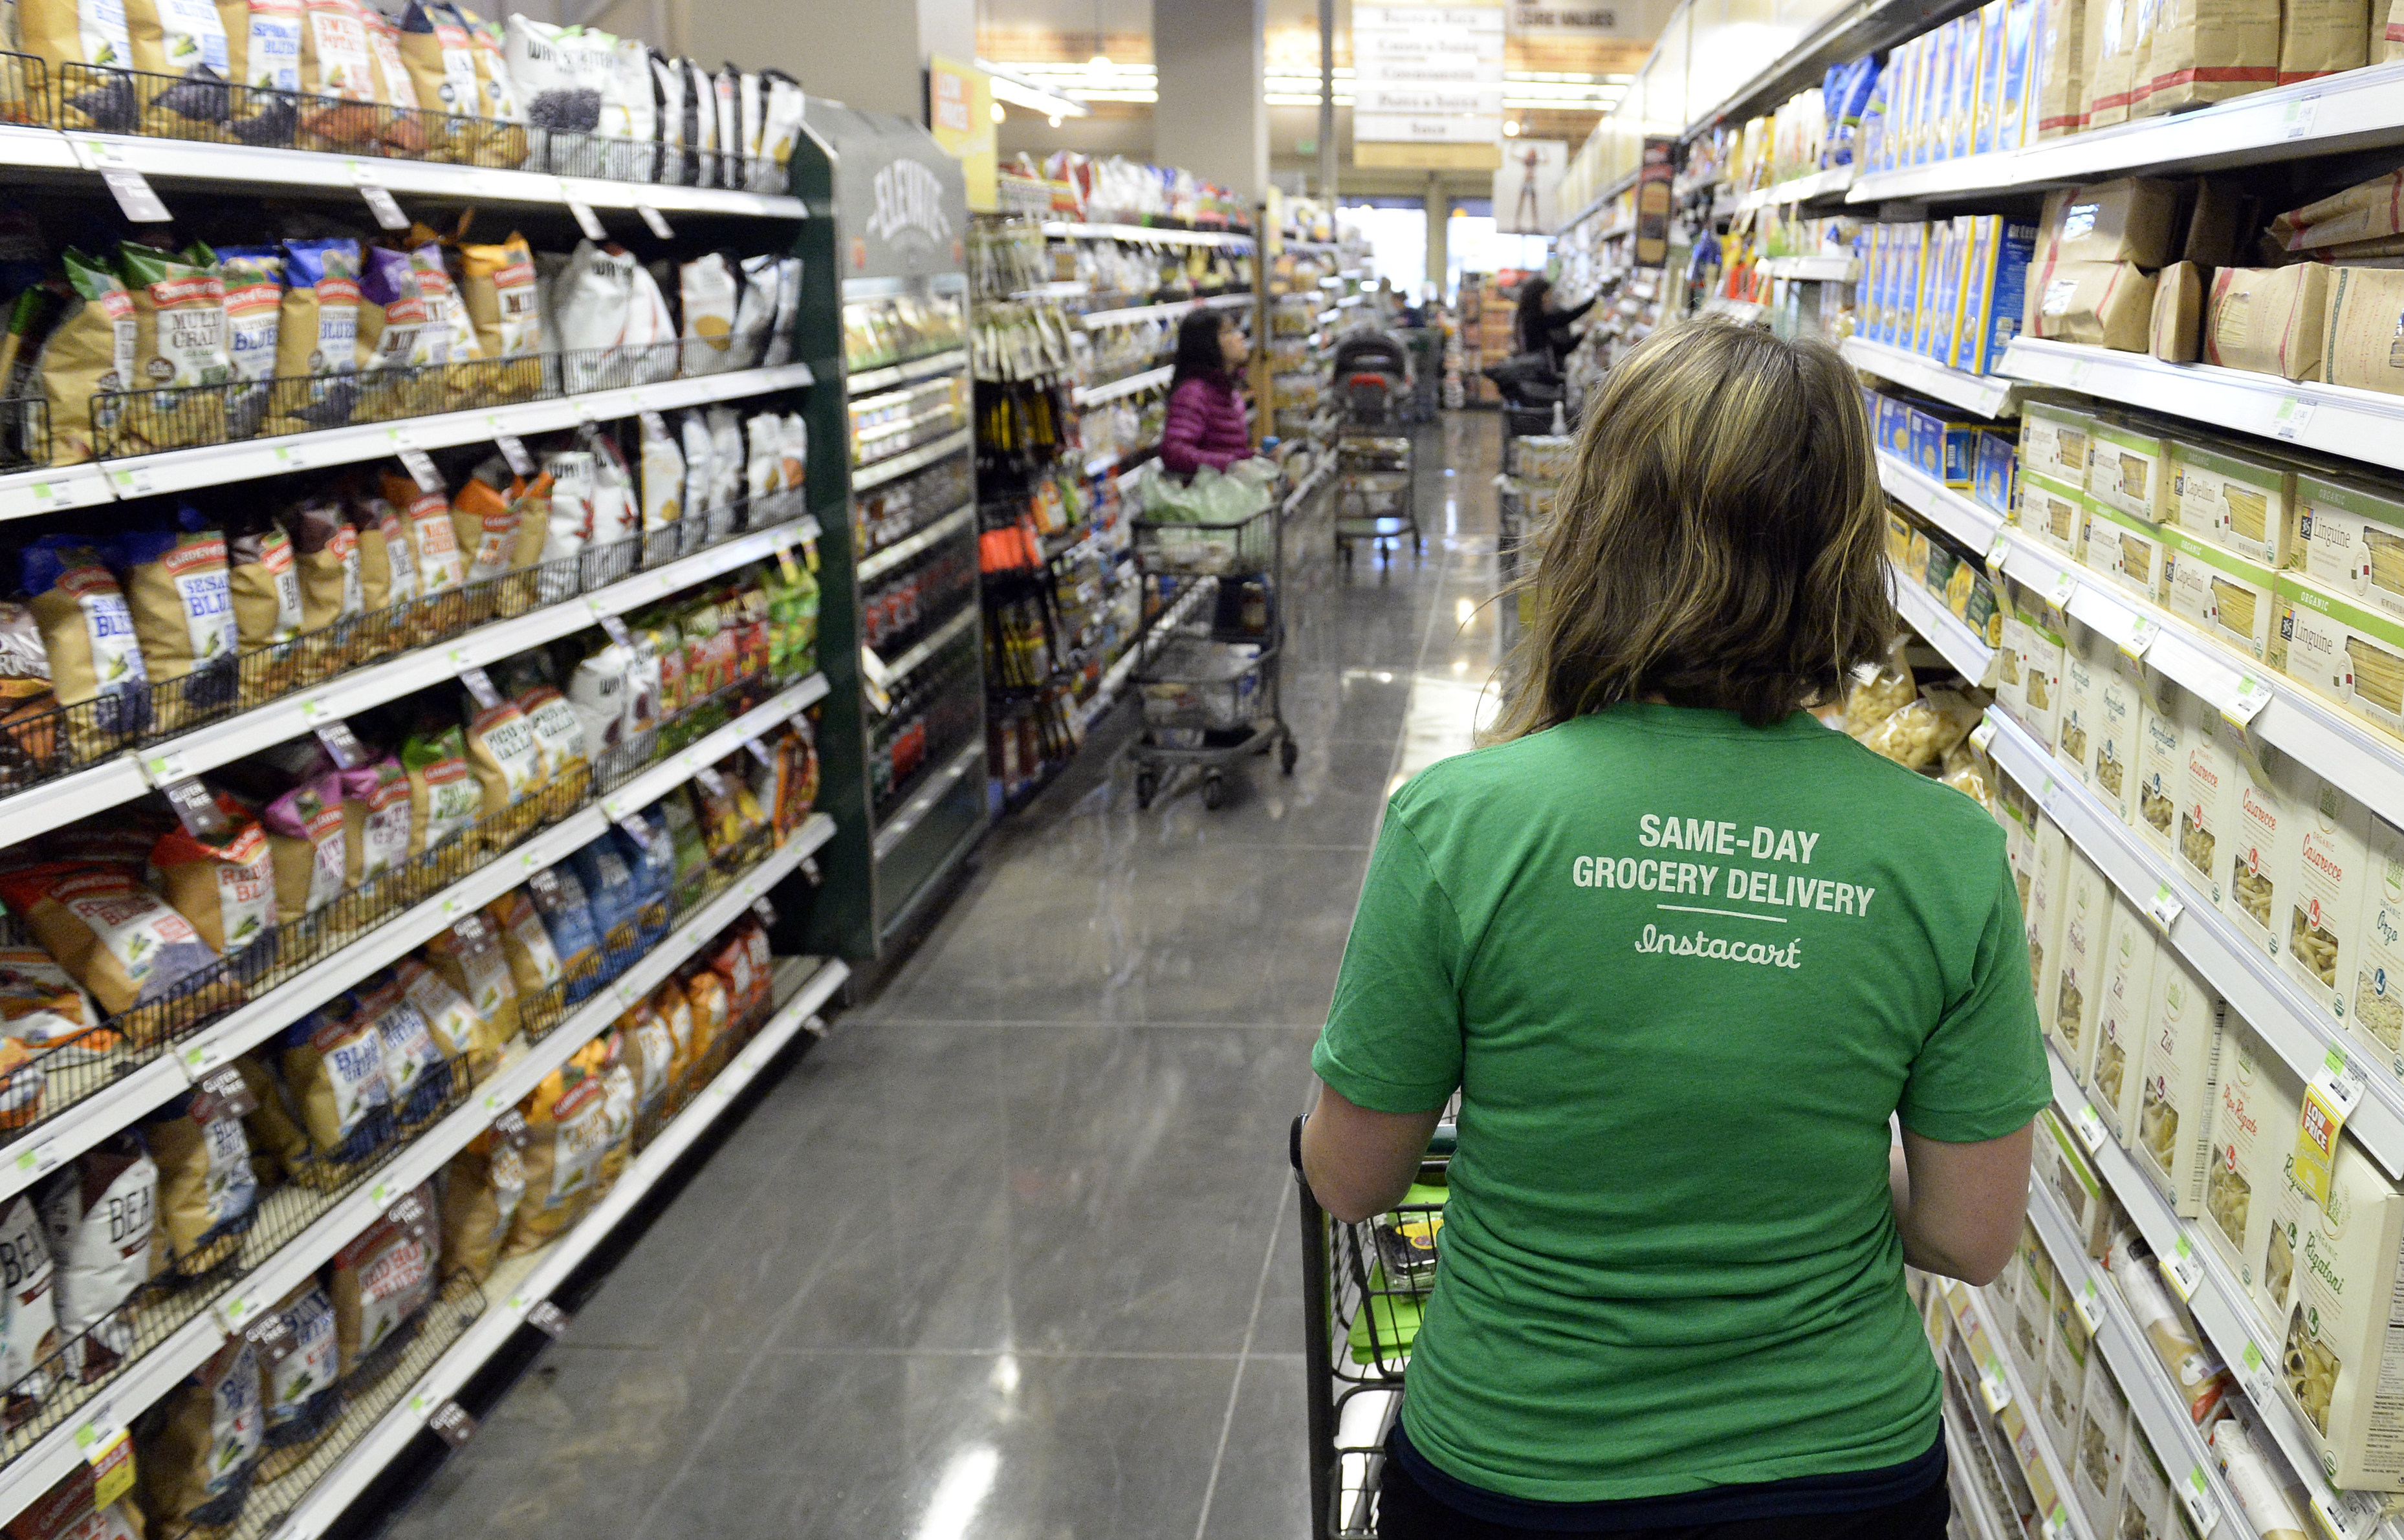 Instacart workers are organizing national boycott to reinstate a default 10 percent tip